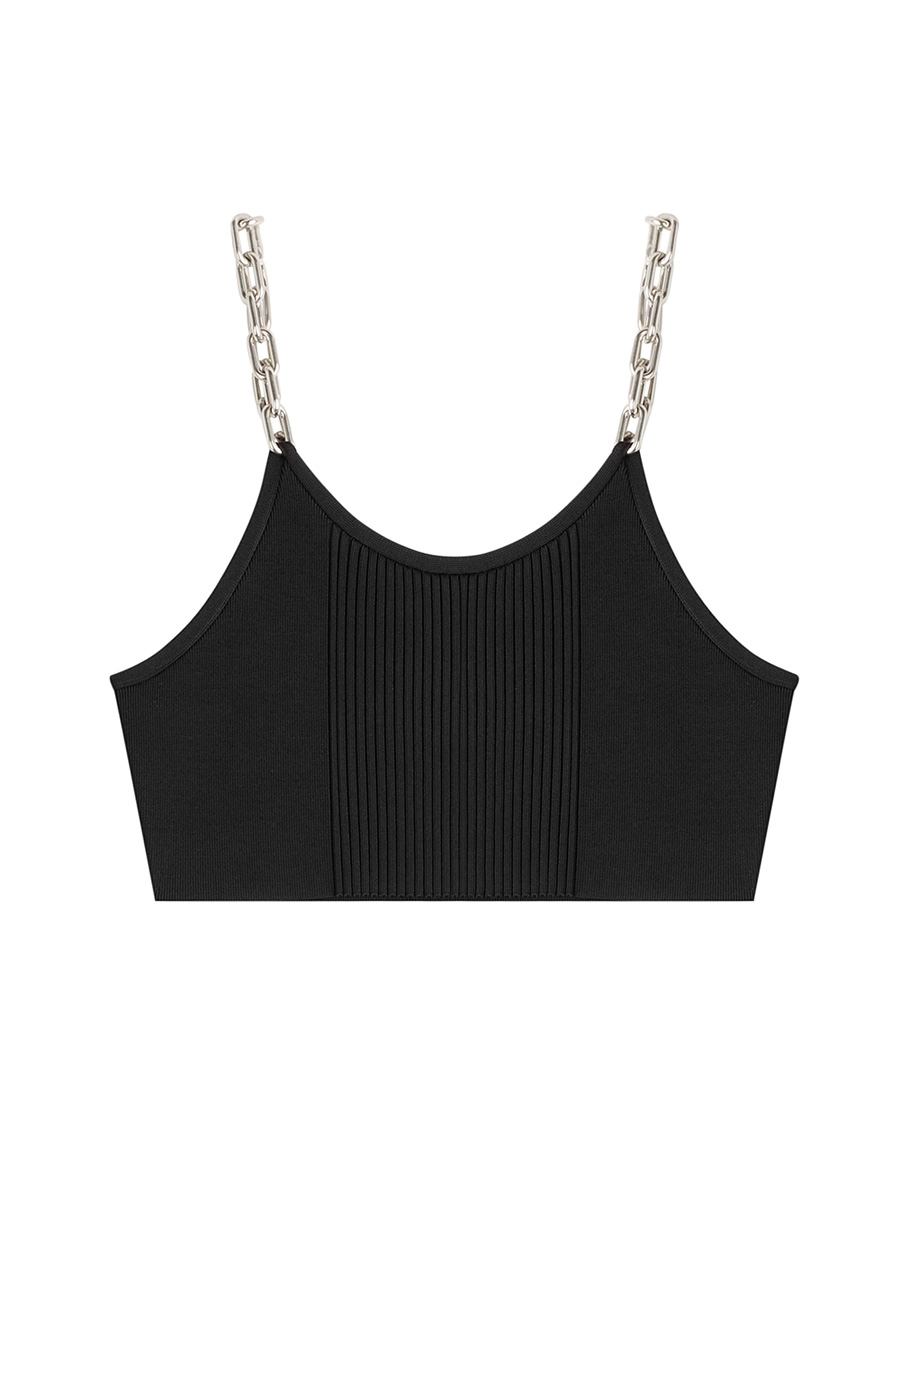 Alexander Wang Cropped Top With Chain-link Straps